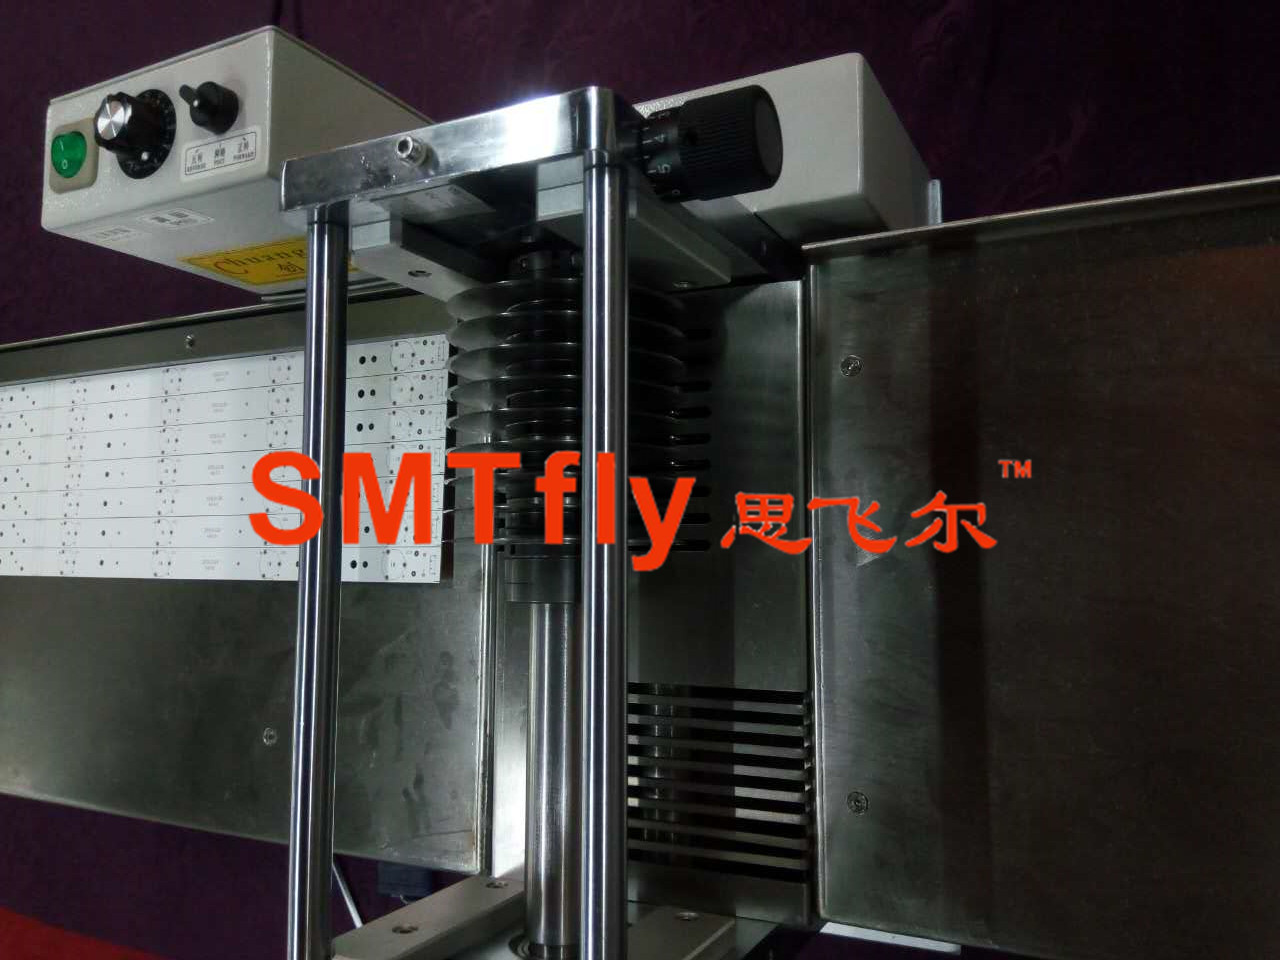 High Efficiency CNC Depanelizer,SMTfly-1SN